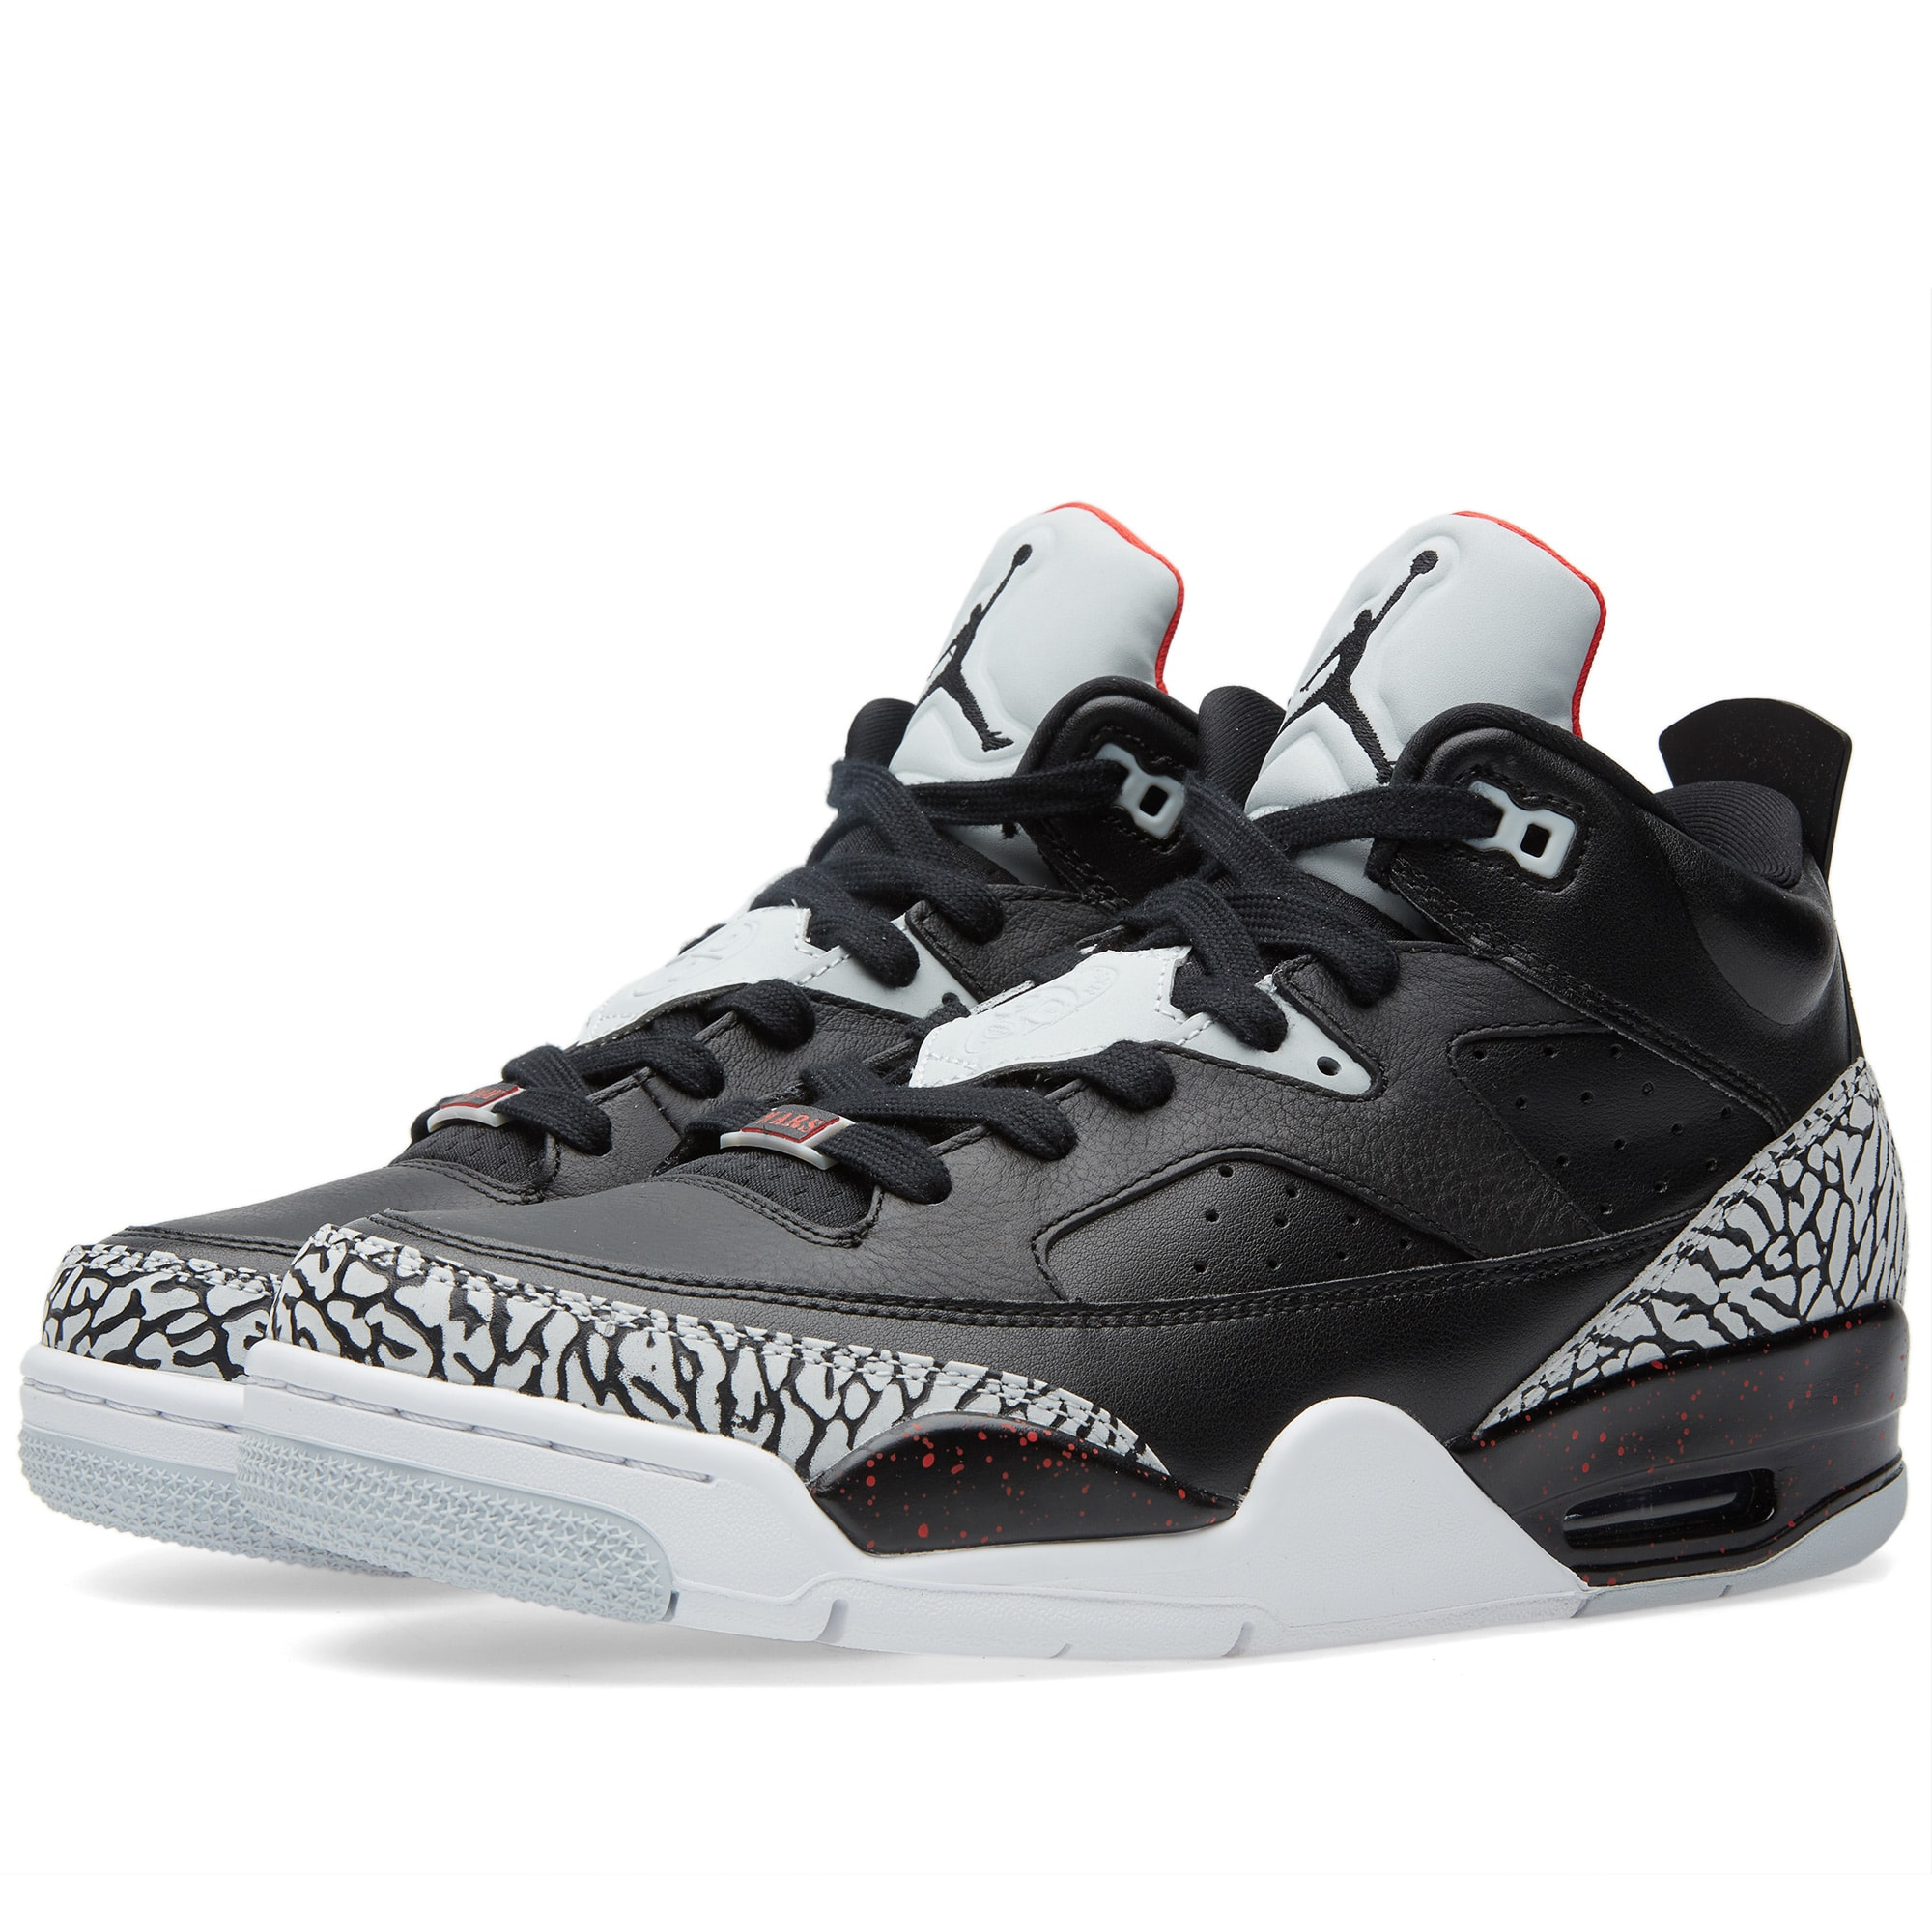 low priced d291b 38509 Nike Air Jordan Son of Mars Low  Black Cement  Black   University Red   END.